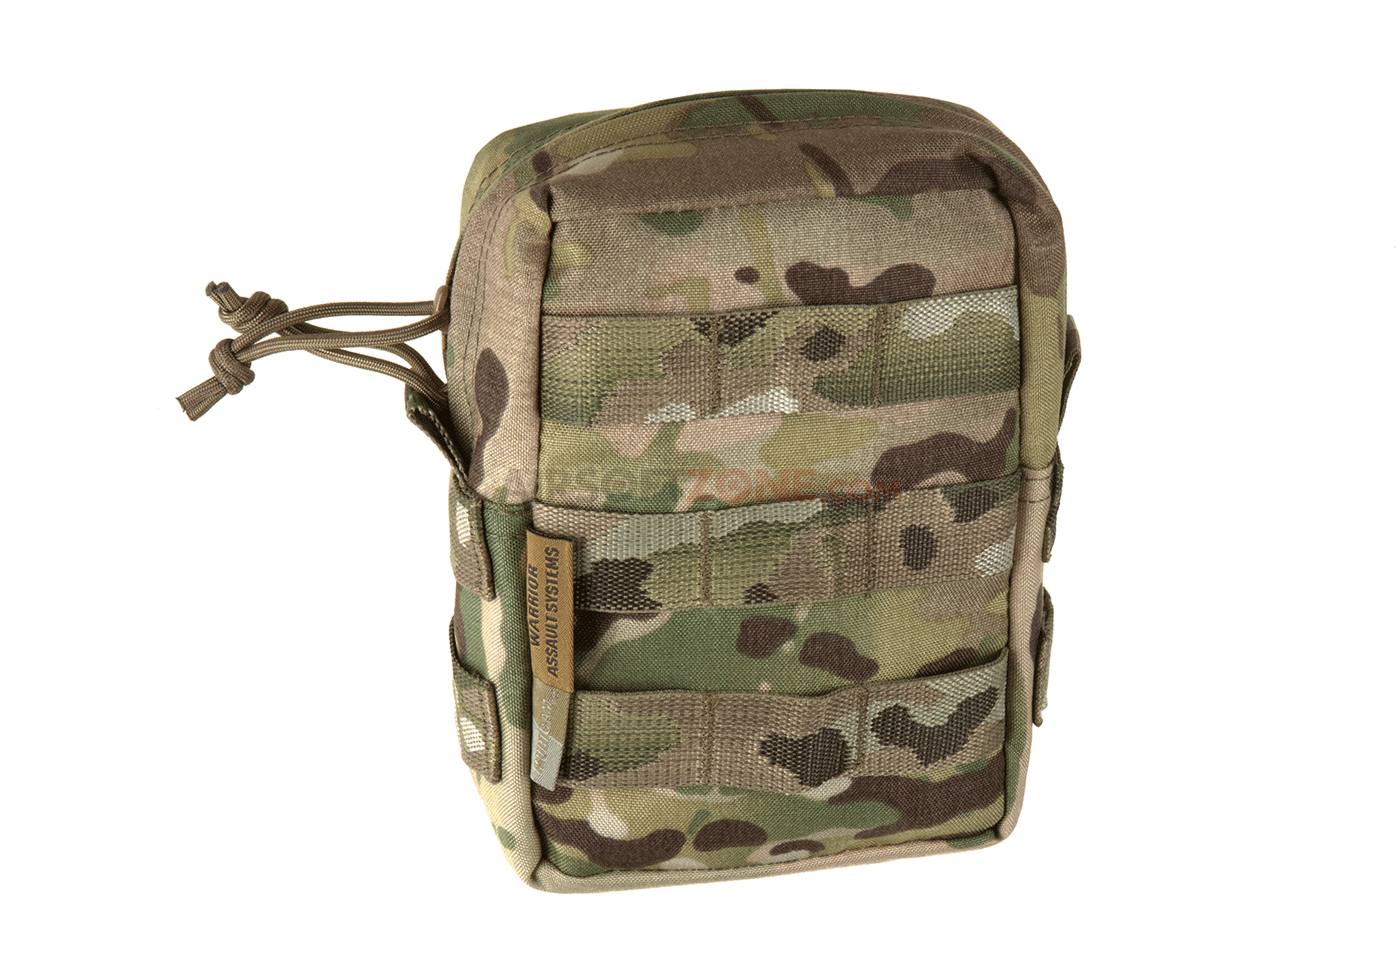 Small MOLLE Utility Pouch Zipped